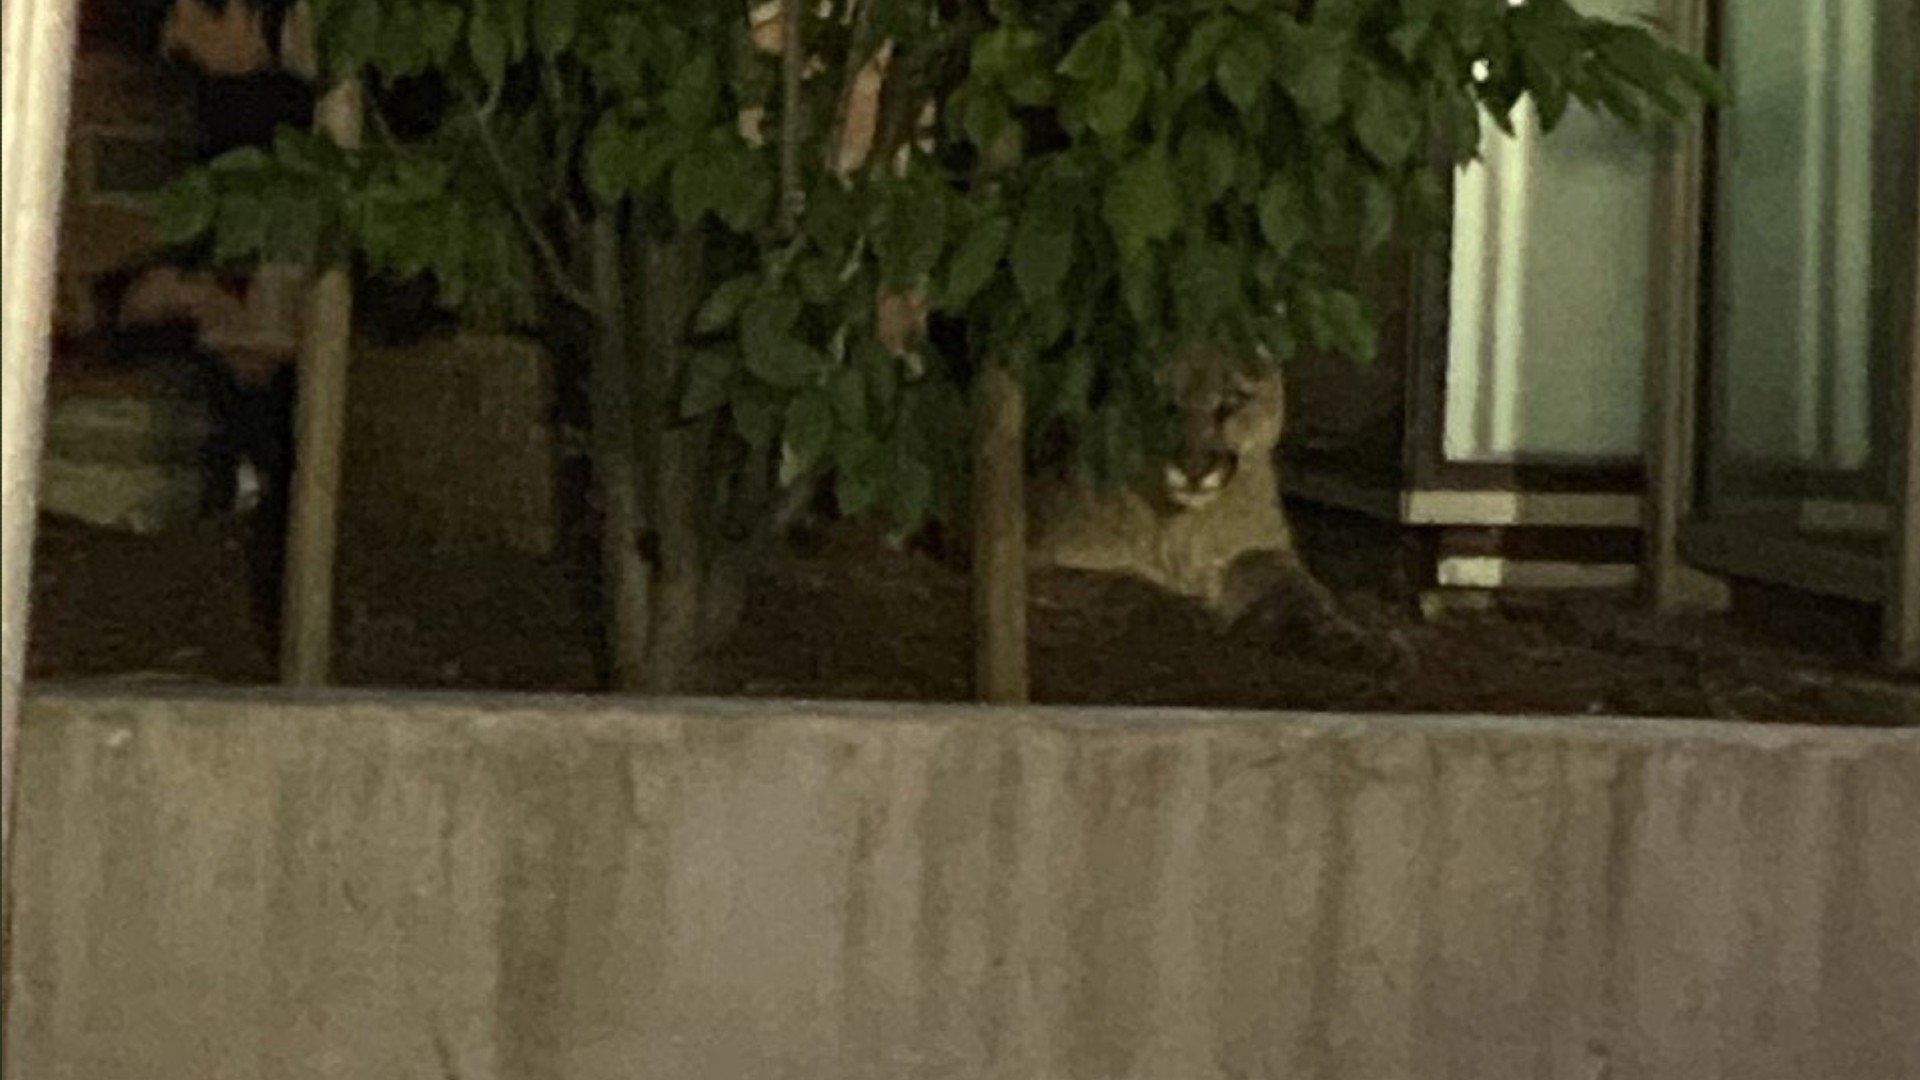 A mountain lion captured near Oracle Park in San Francisco on June 18, 2020. (San Francisco Police Department)